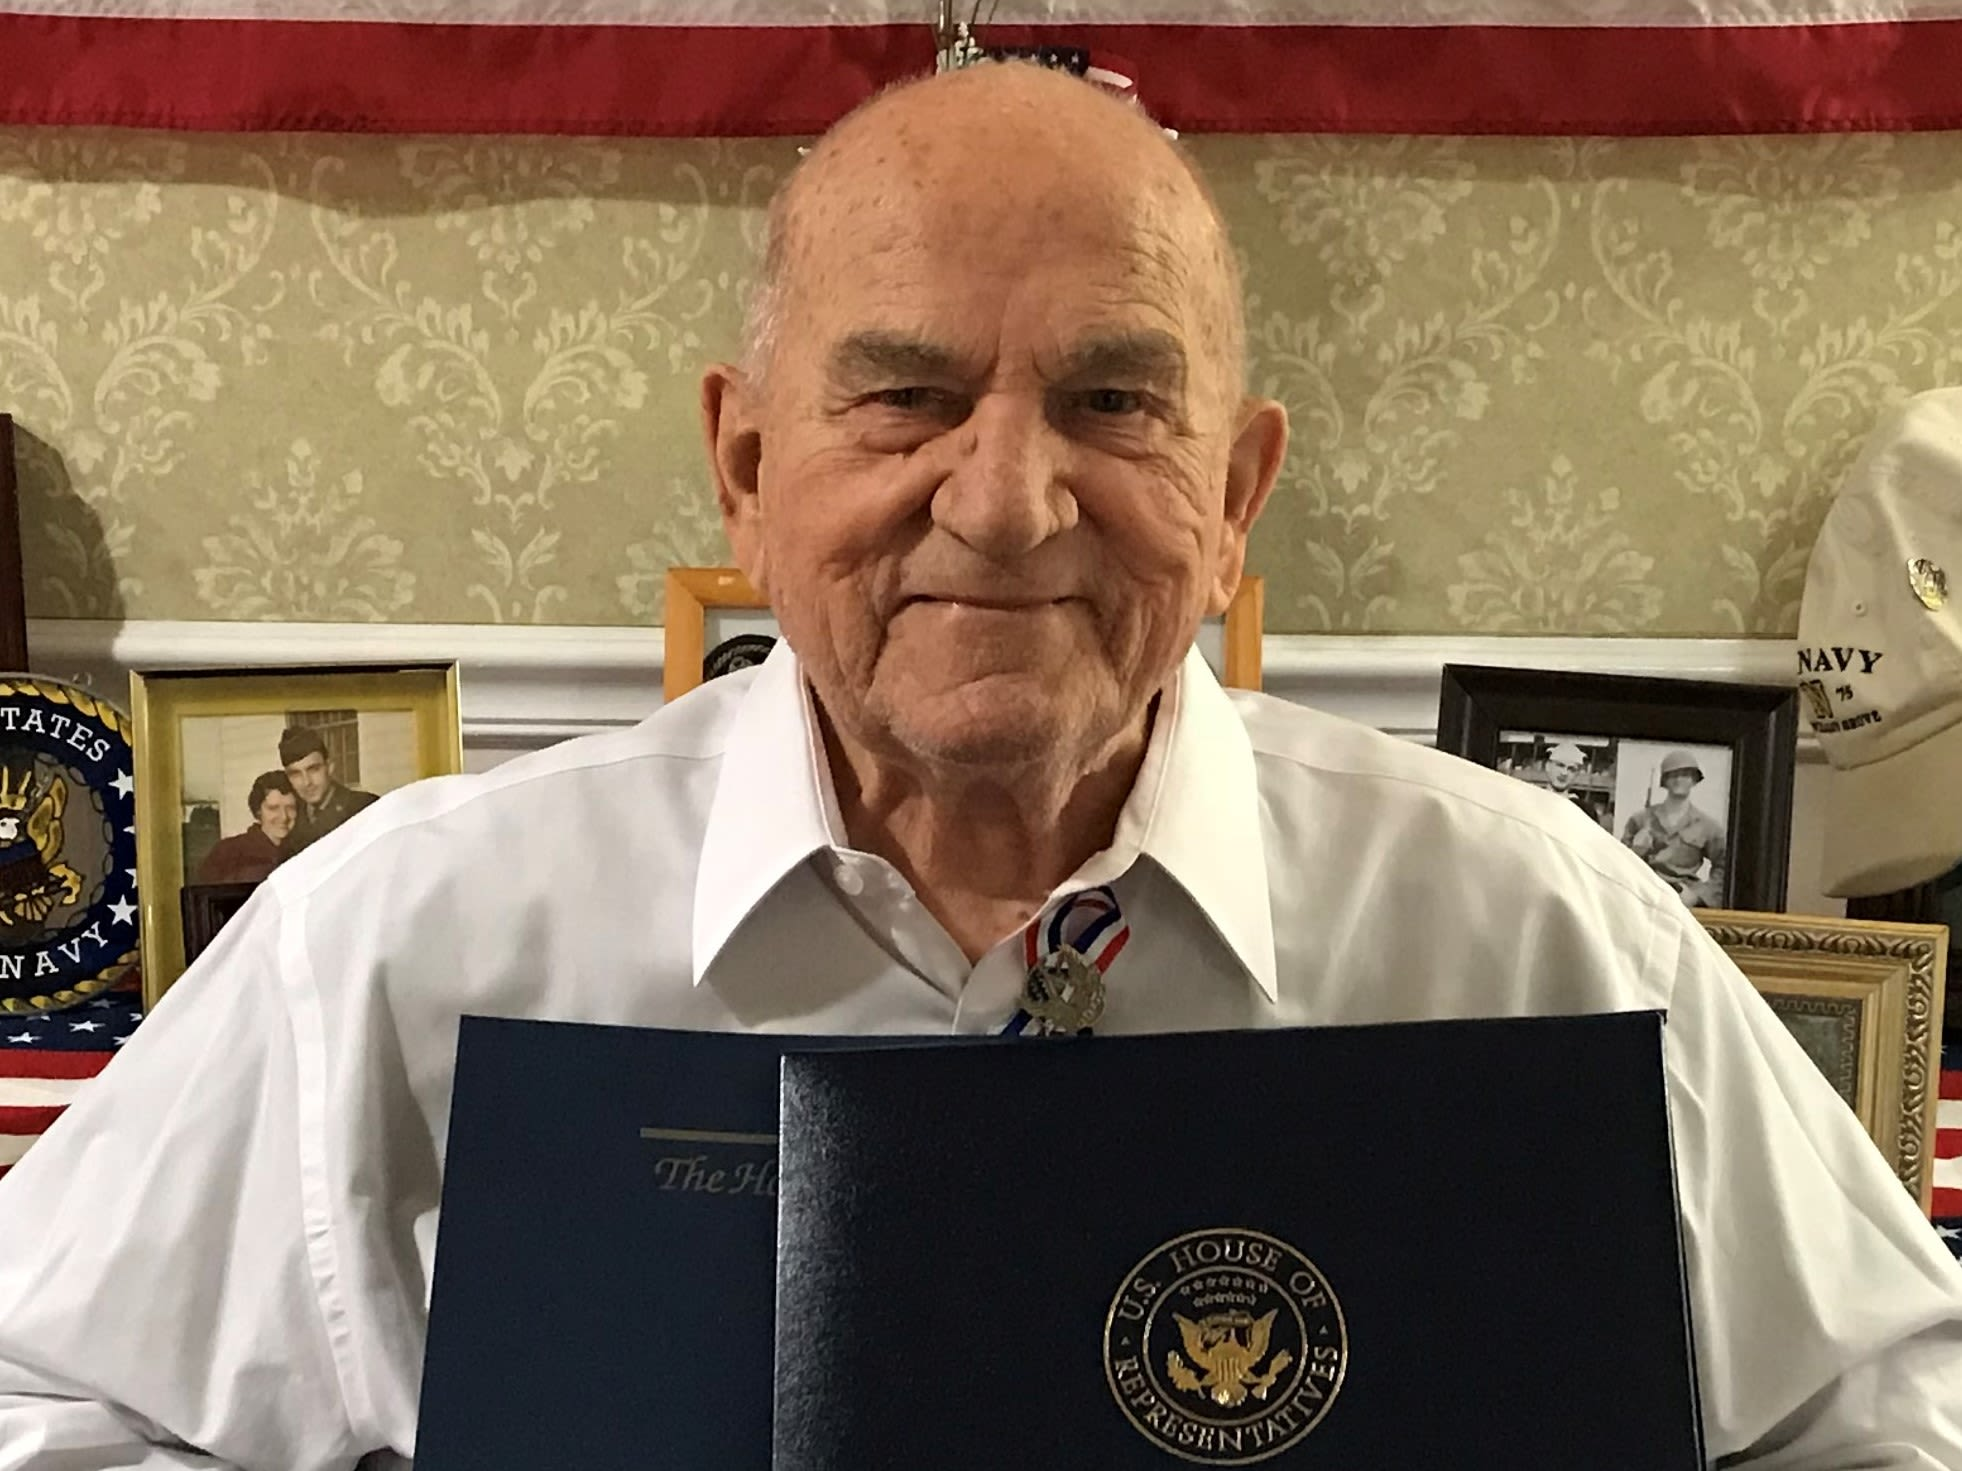 George Bolinsky at Heritage Hill Senior Community in Weatherly, Pennsylvania